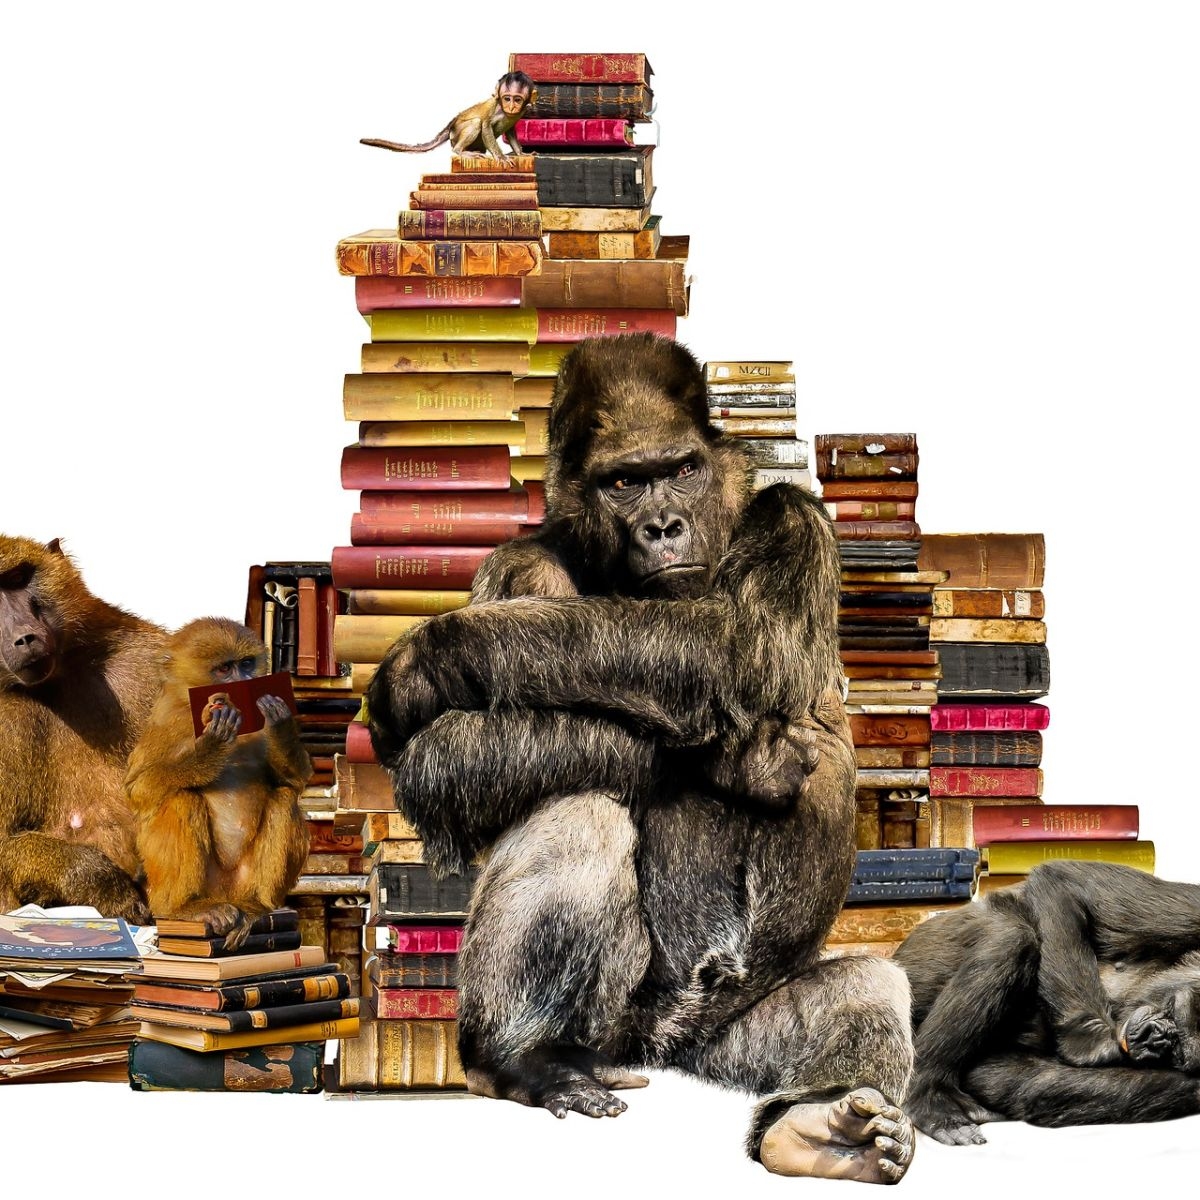 Gorilla and apes in front of books